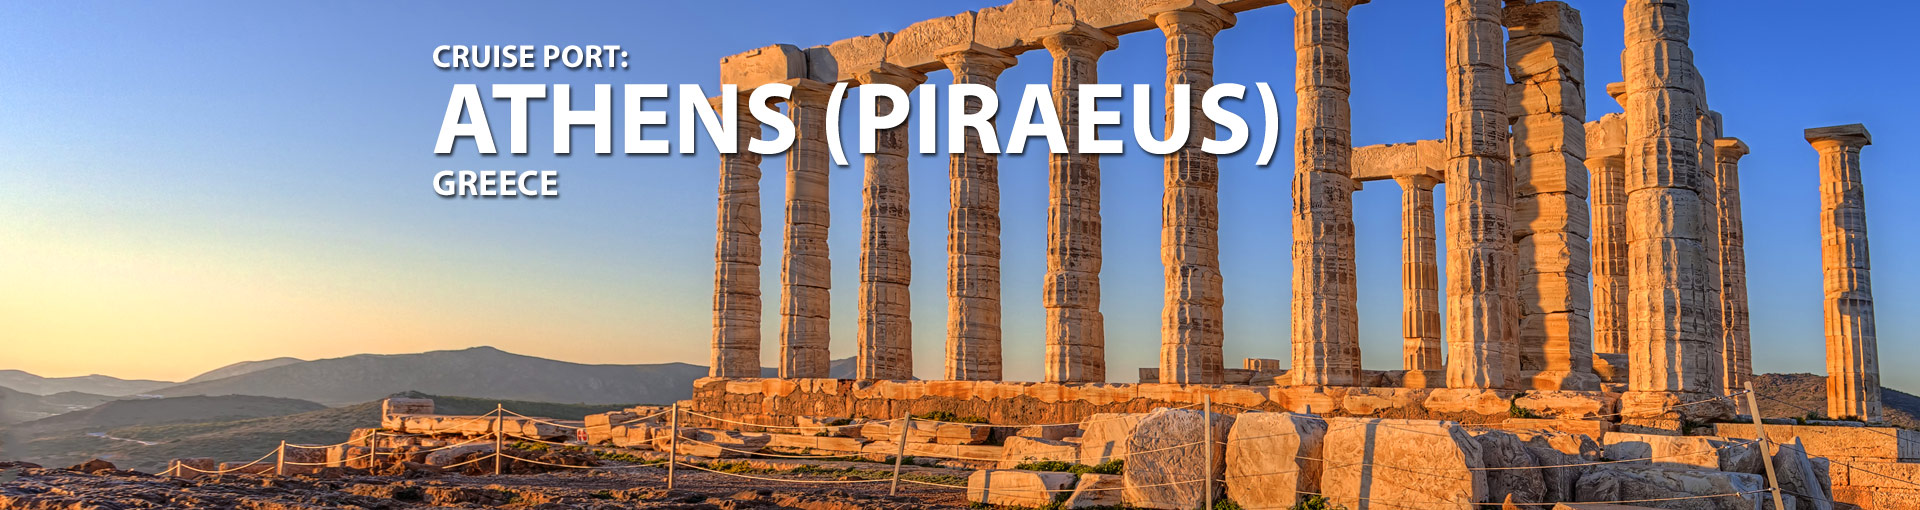 Piraeus Athens Greece Cruise Port 2017 And 2018 Cruises From Athens Greece